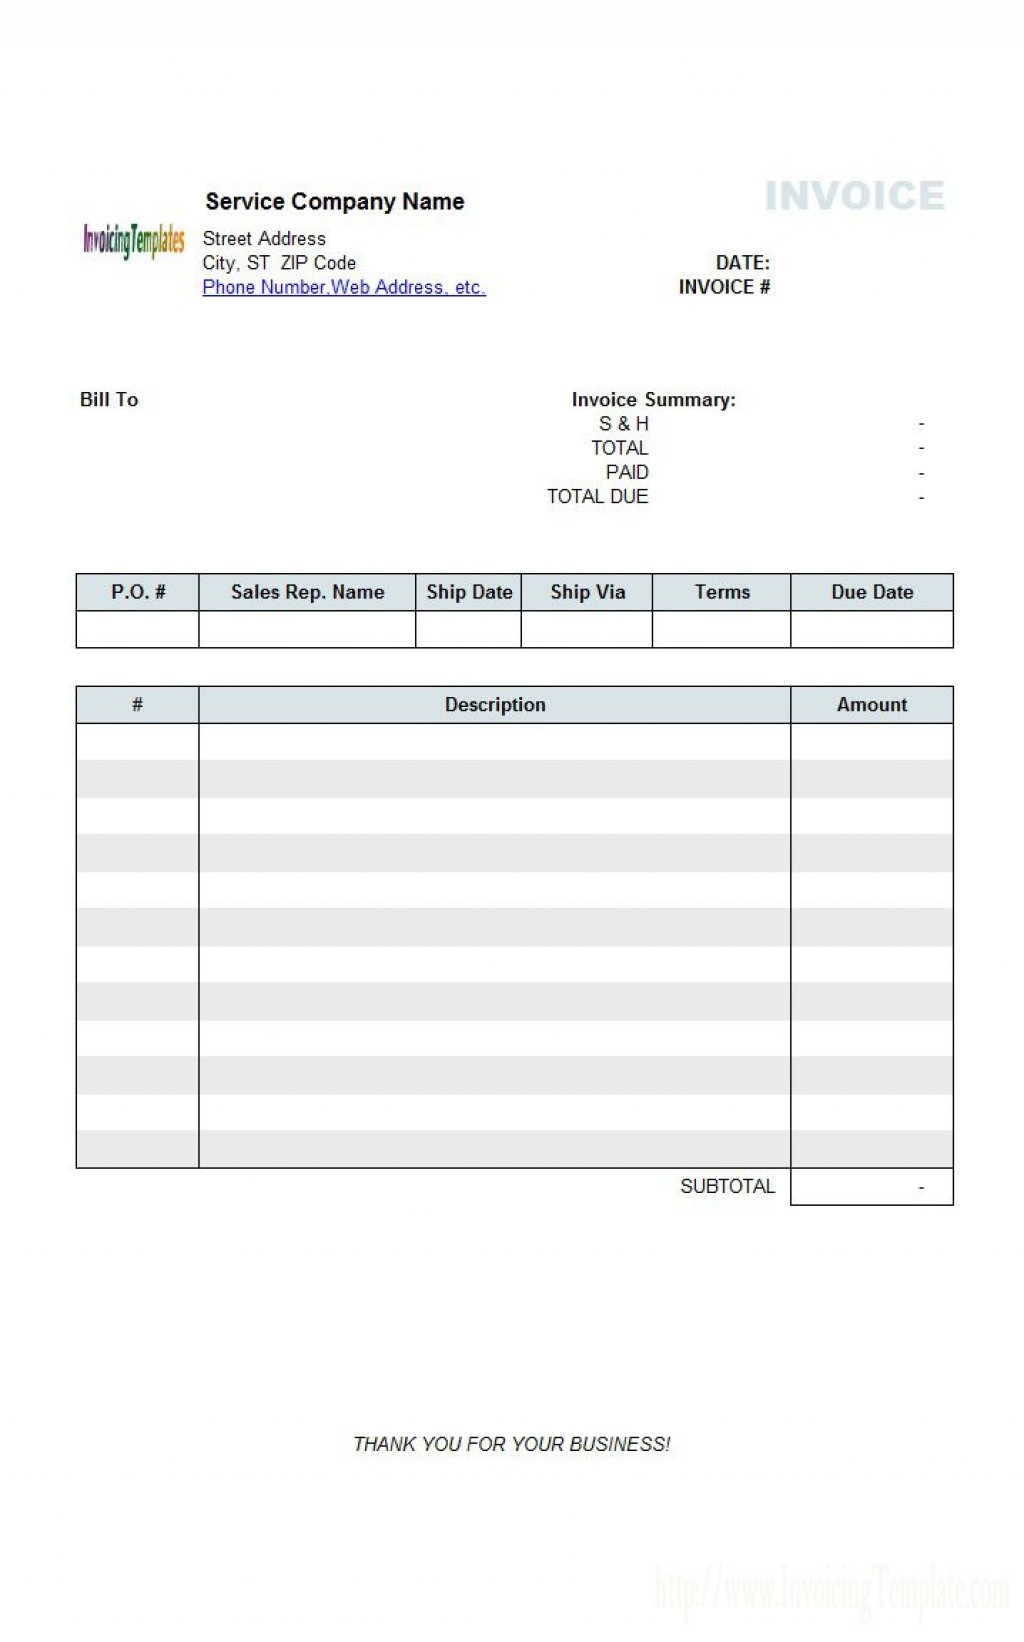 005 Astounding Generic Service Invoice Template Example Large